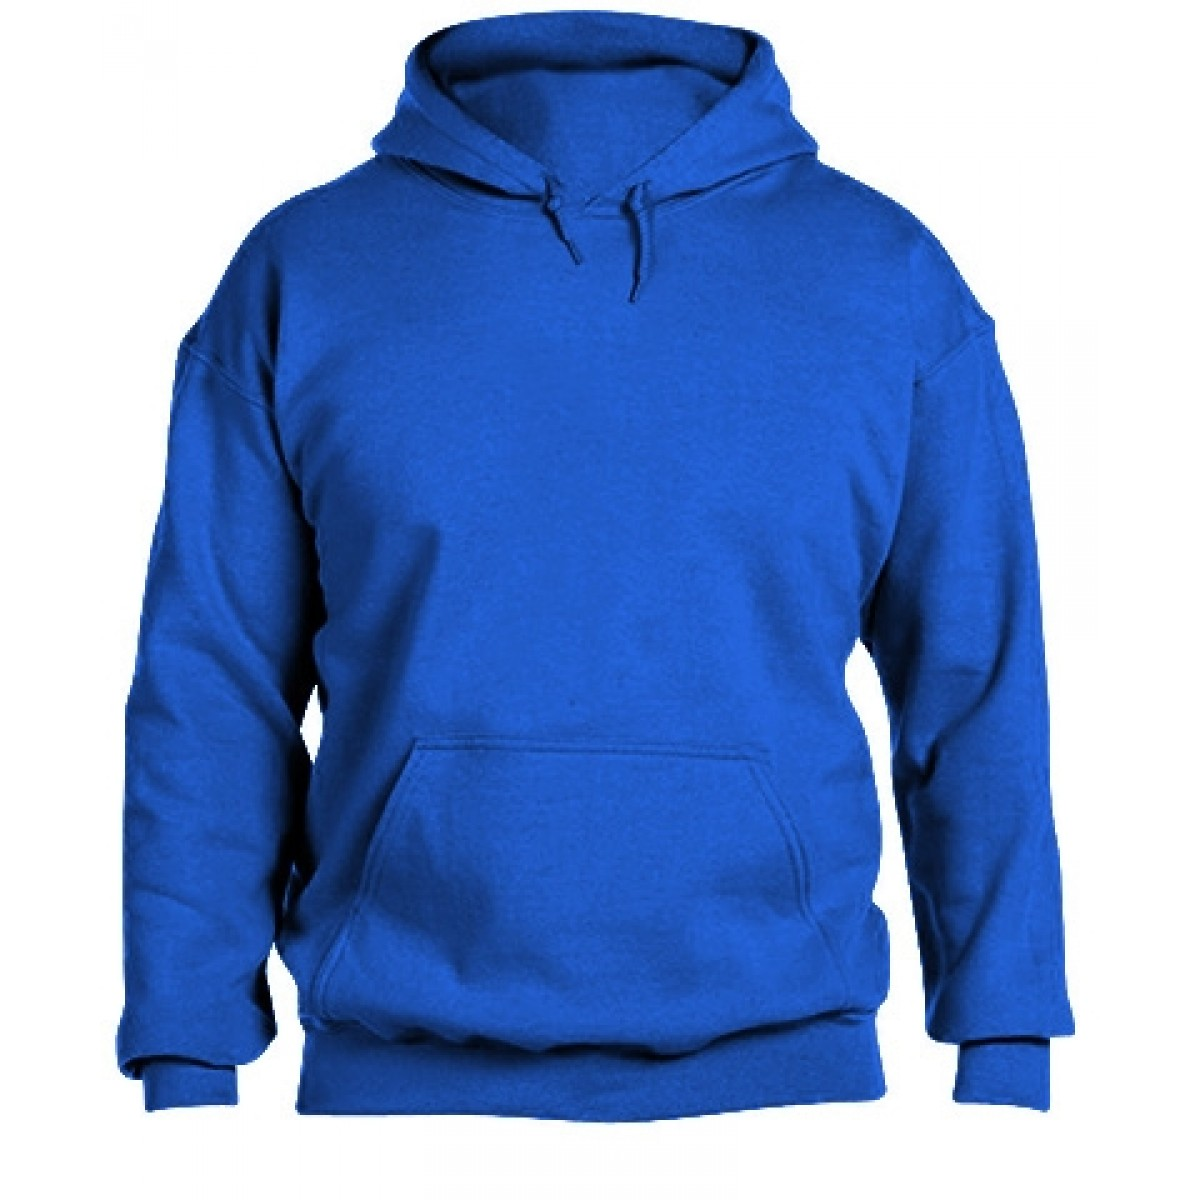 Solid Hooded Sweatshirt  50/50 Heavy Blend-Royal Blue-XL